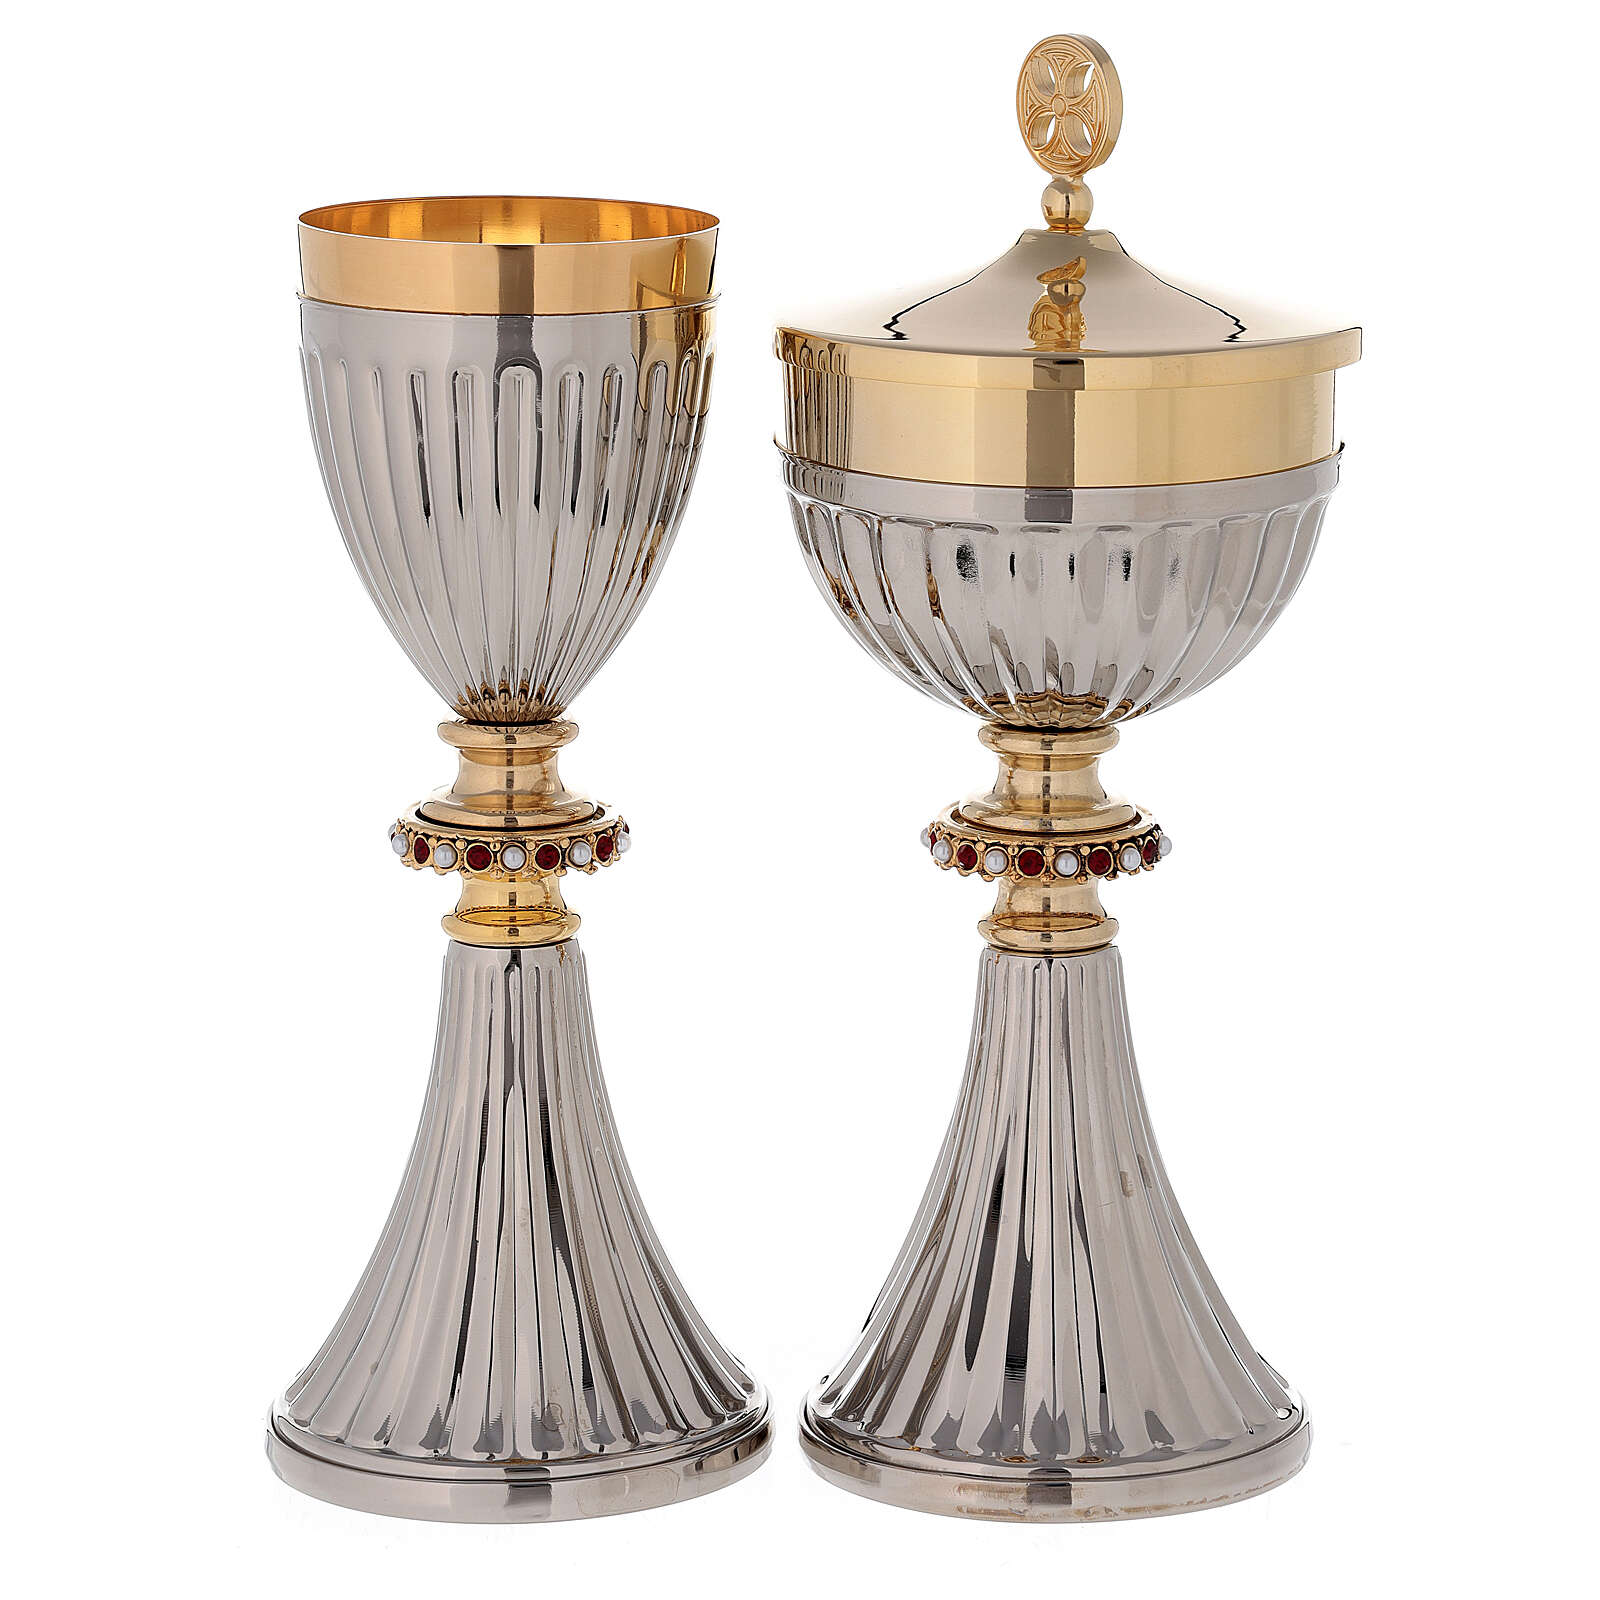 Traveling chalice and Ciborium in 24-karat gold plated brass 4